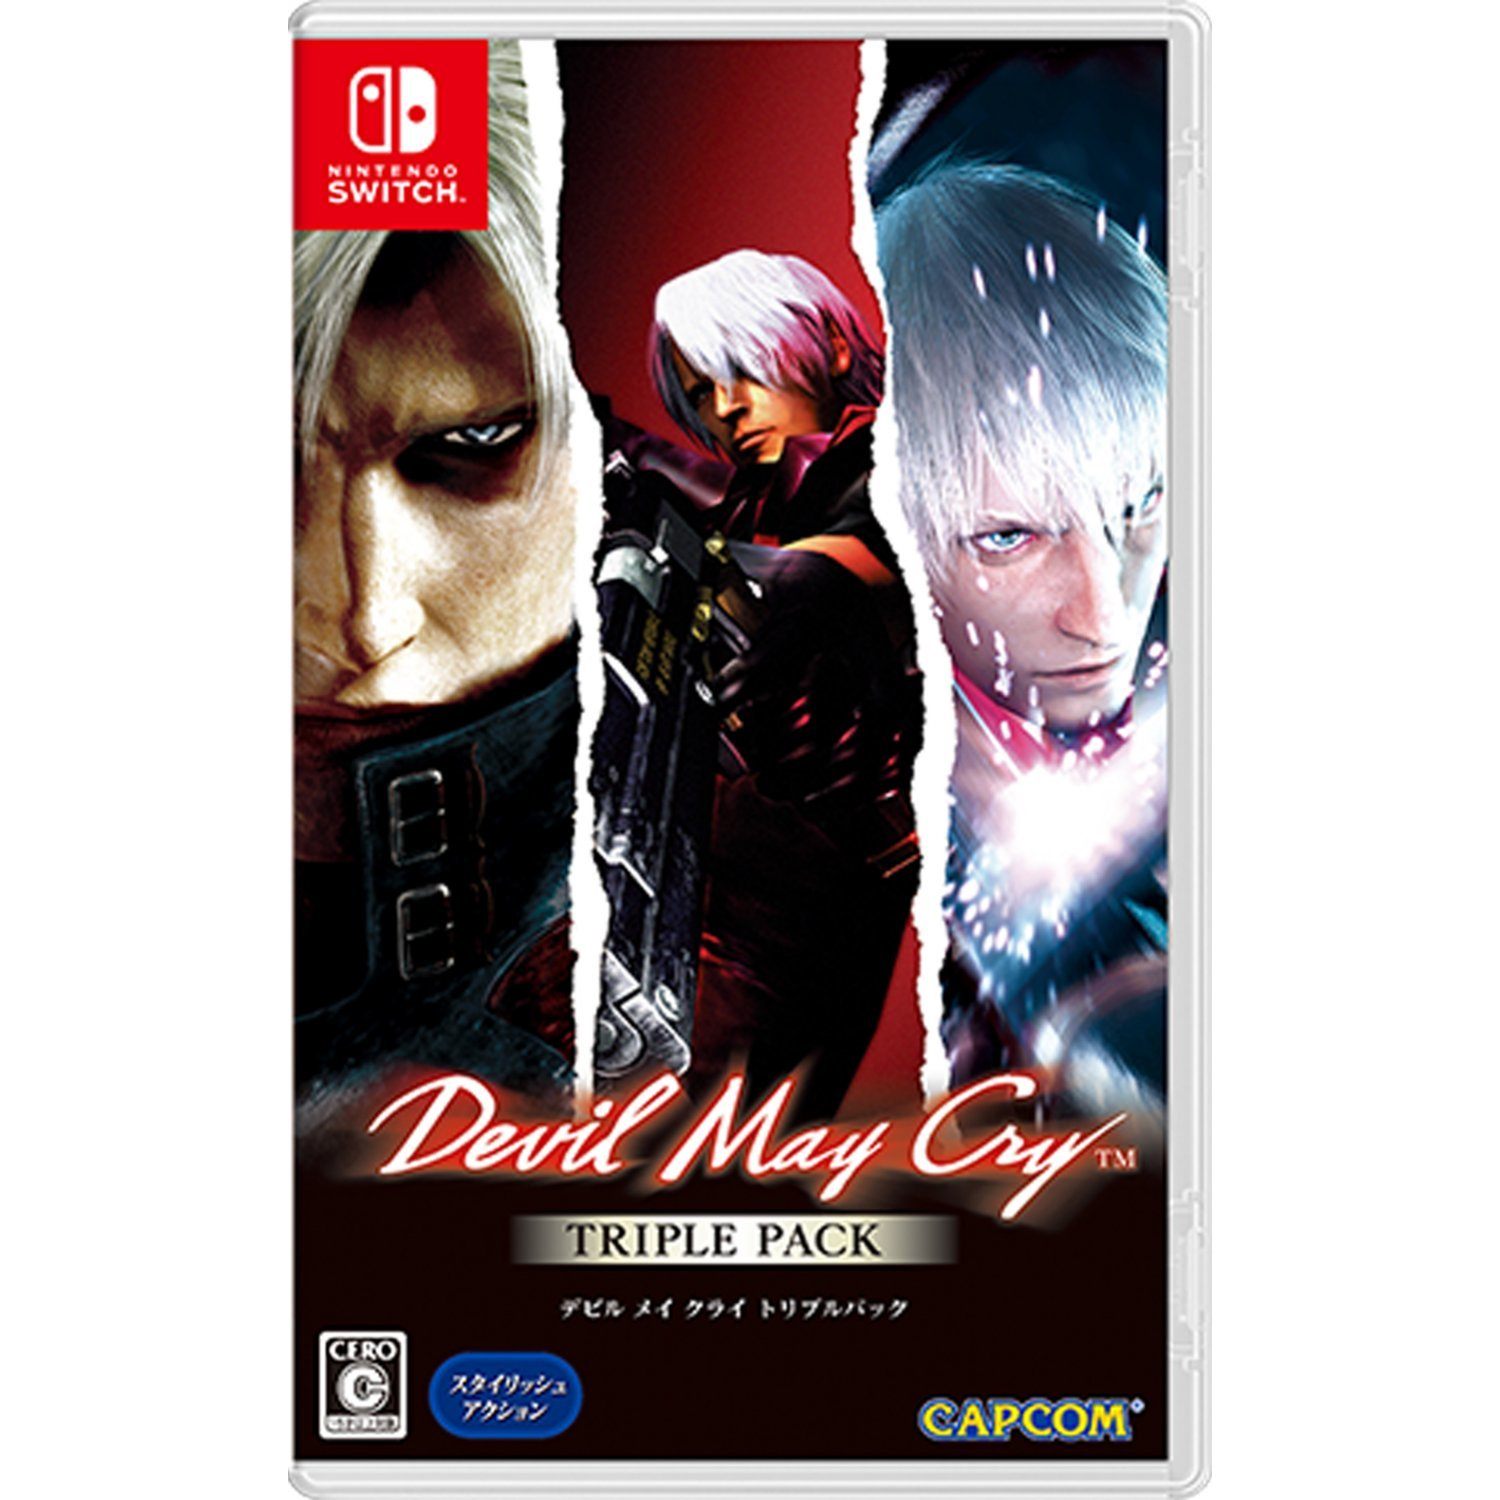 devil-may-cry-triple-pack-614821.9.jpg